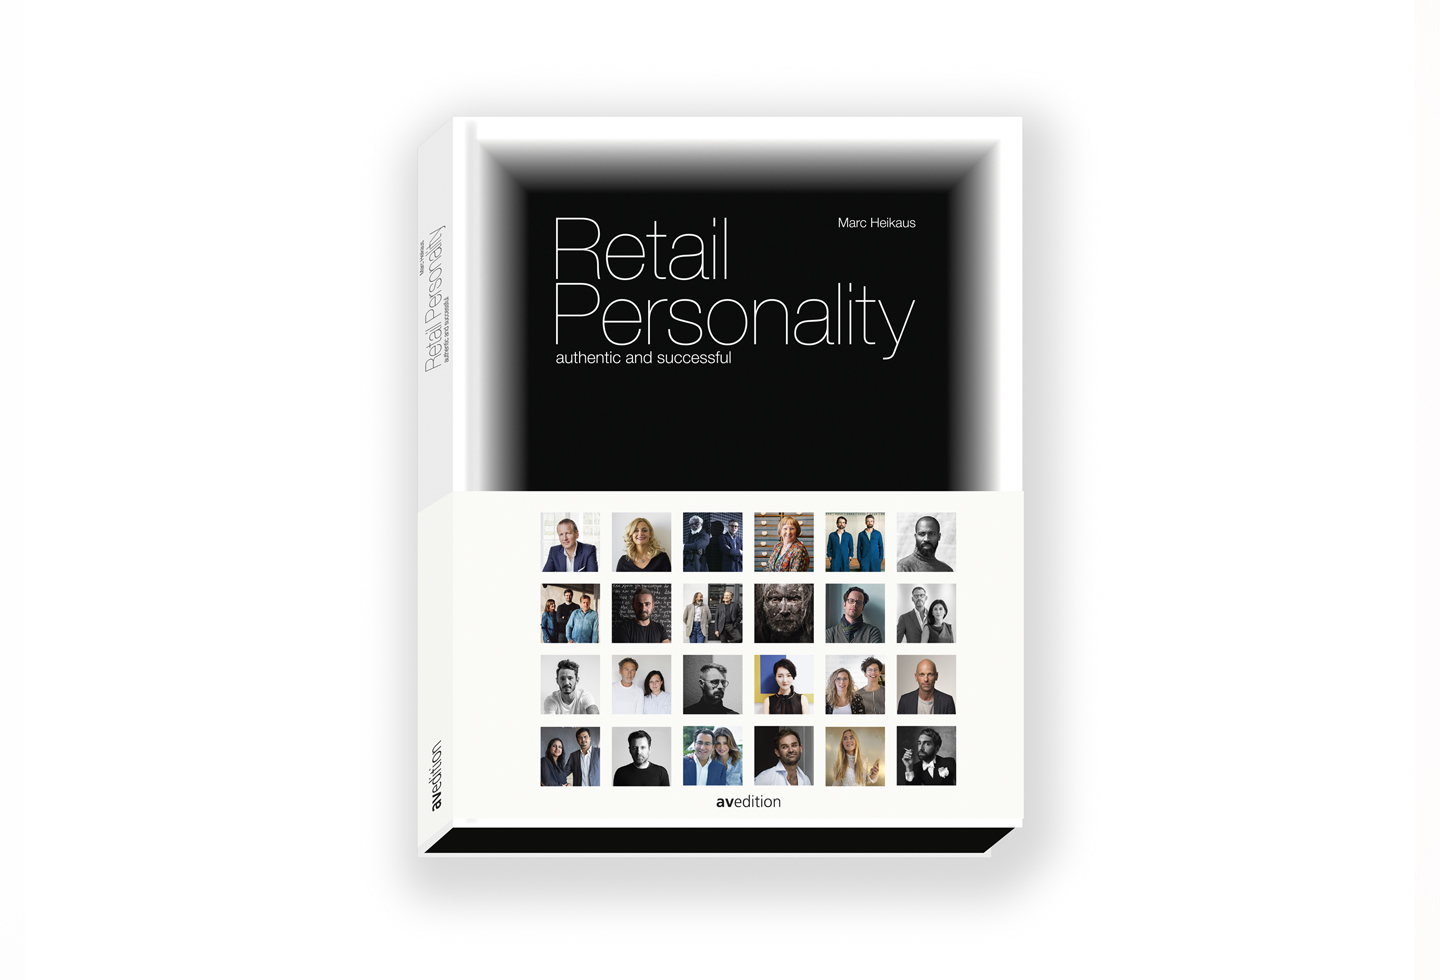 Retail Personality - authentic and successful